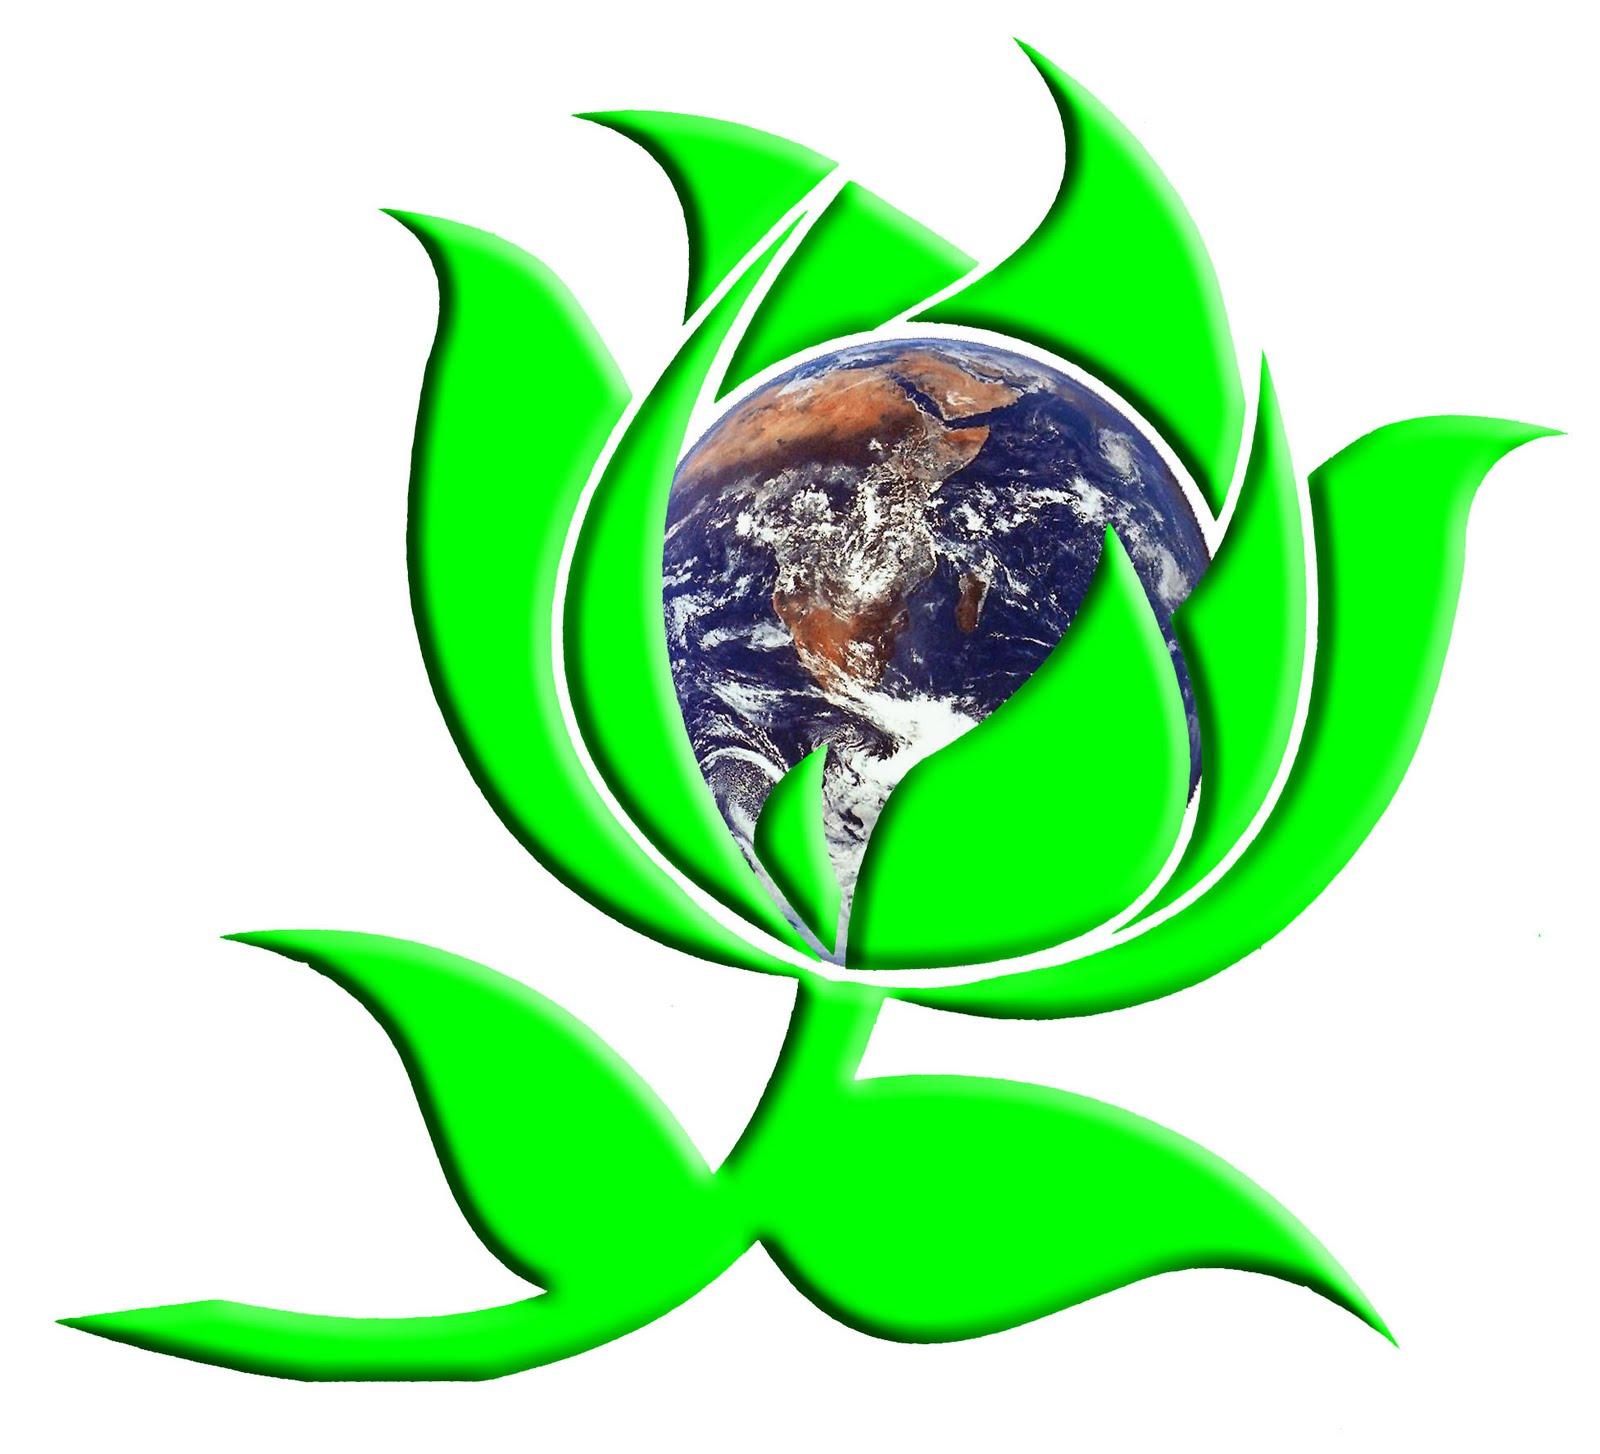 green party 7,318 tweets • 900 photos/videos • 835k followers check out the latest tweets from green party us 🌻 (@greenpartyus.